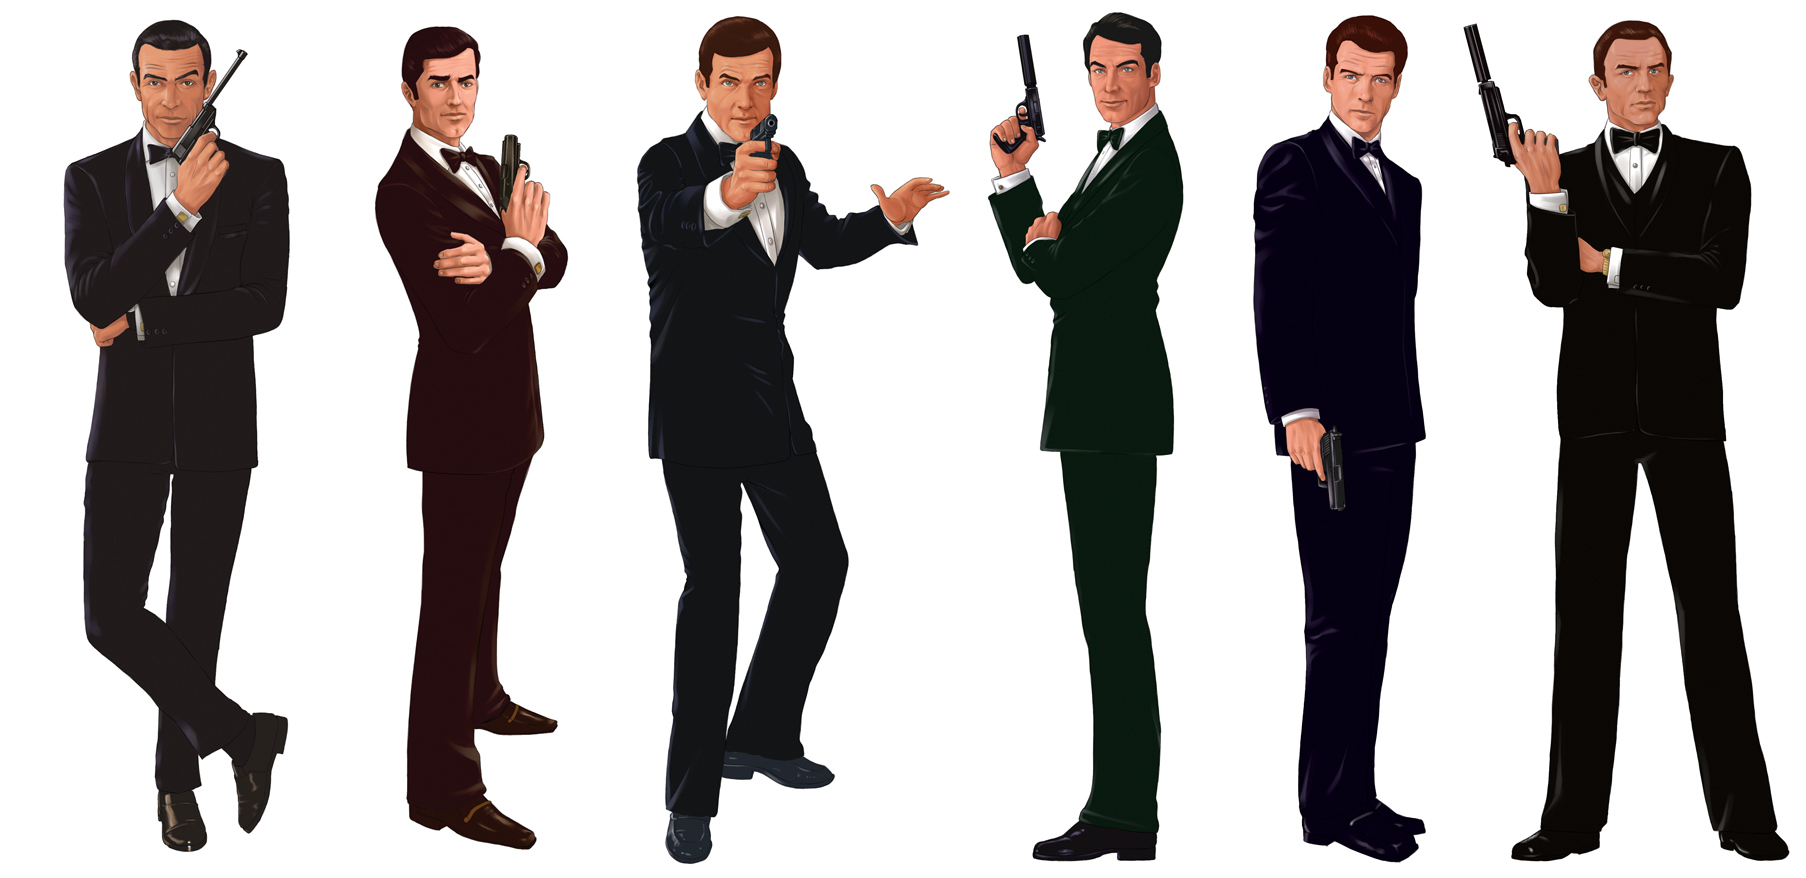 Bond____James_Bond_by_Tozani